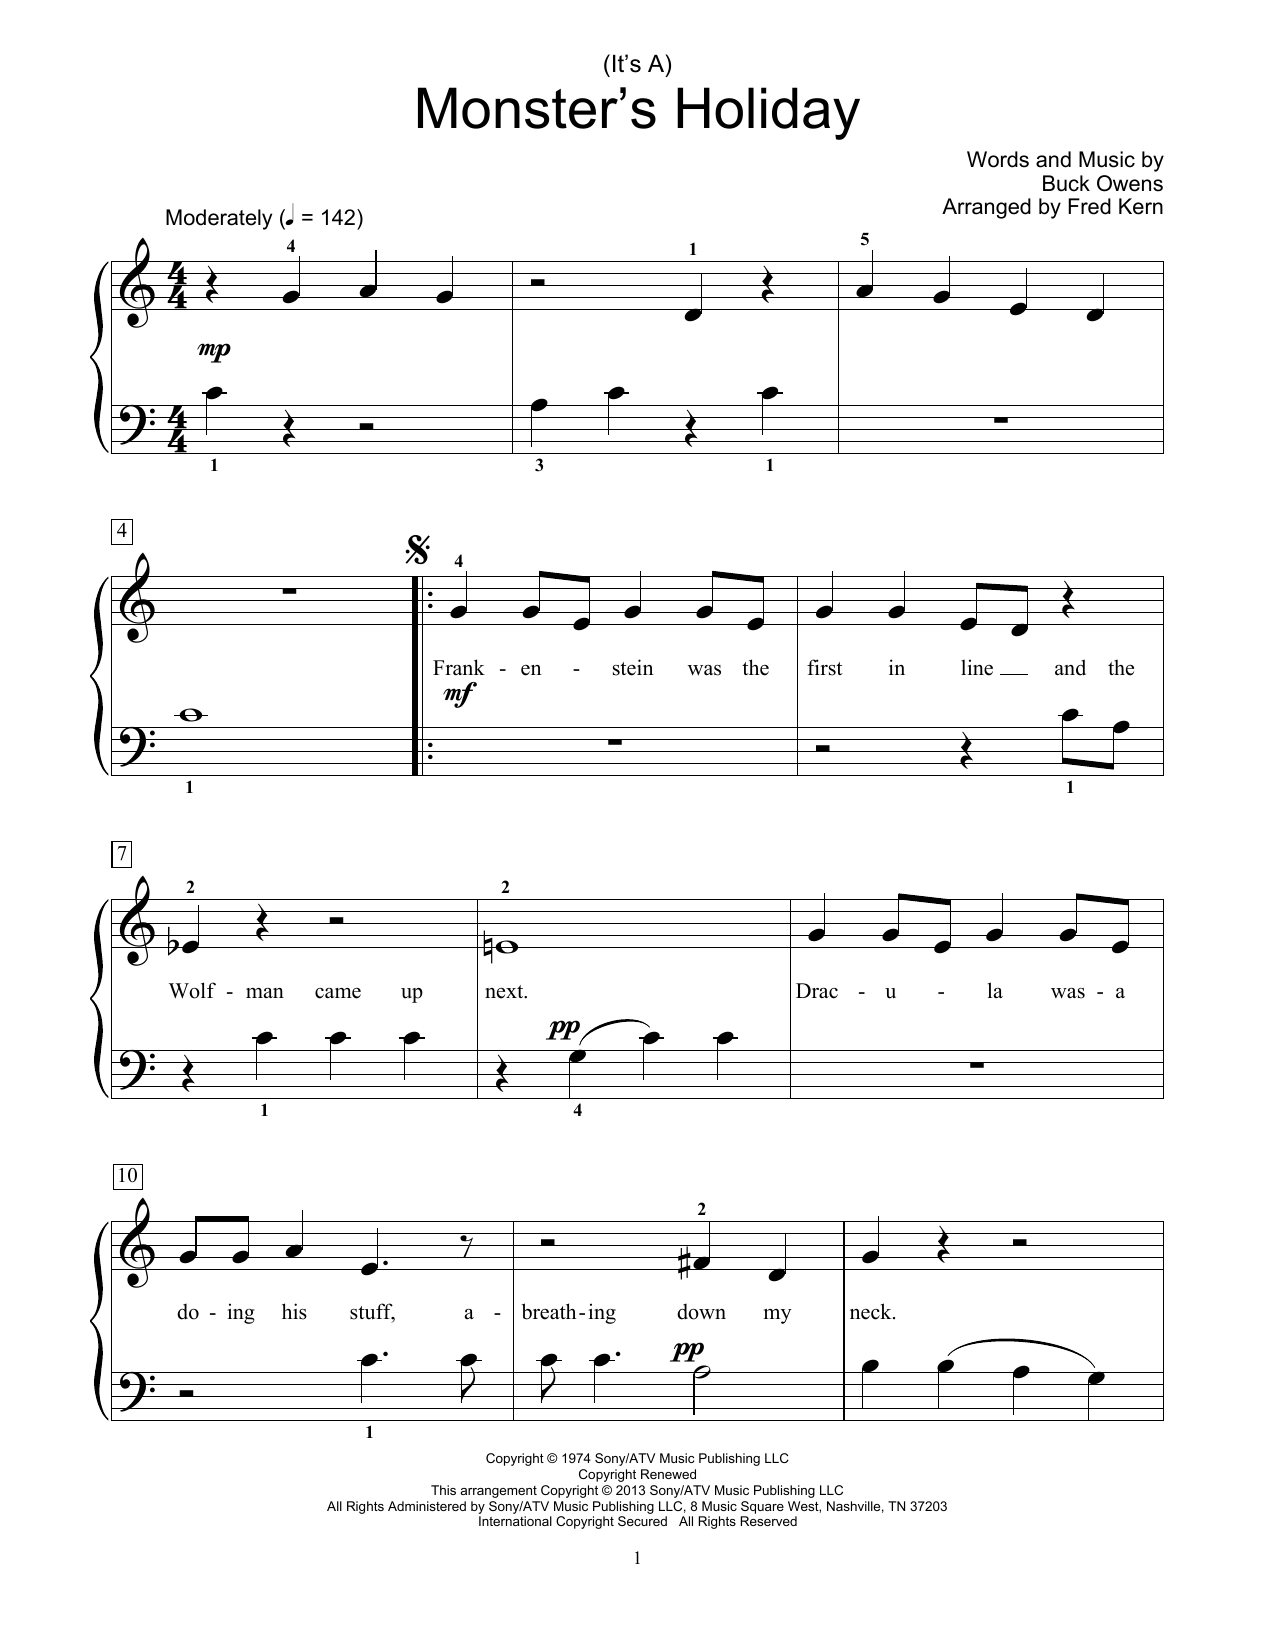 Fred Kern '(It's A) Monster's Holiday' Sheet Music Notes, Chords | Download  Printable Educational Piano - Sku: 99347